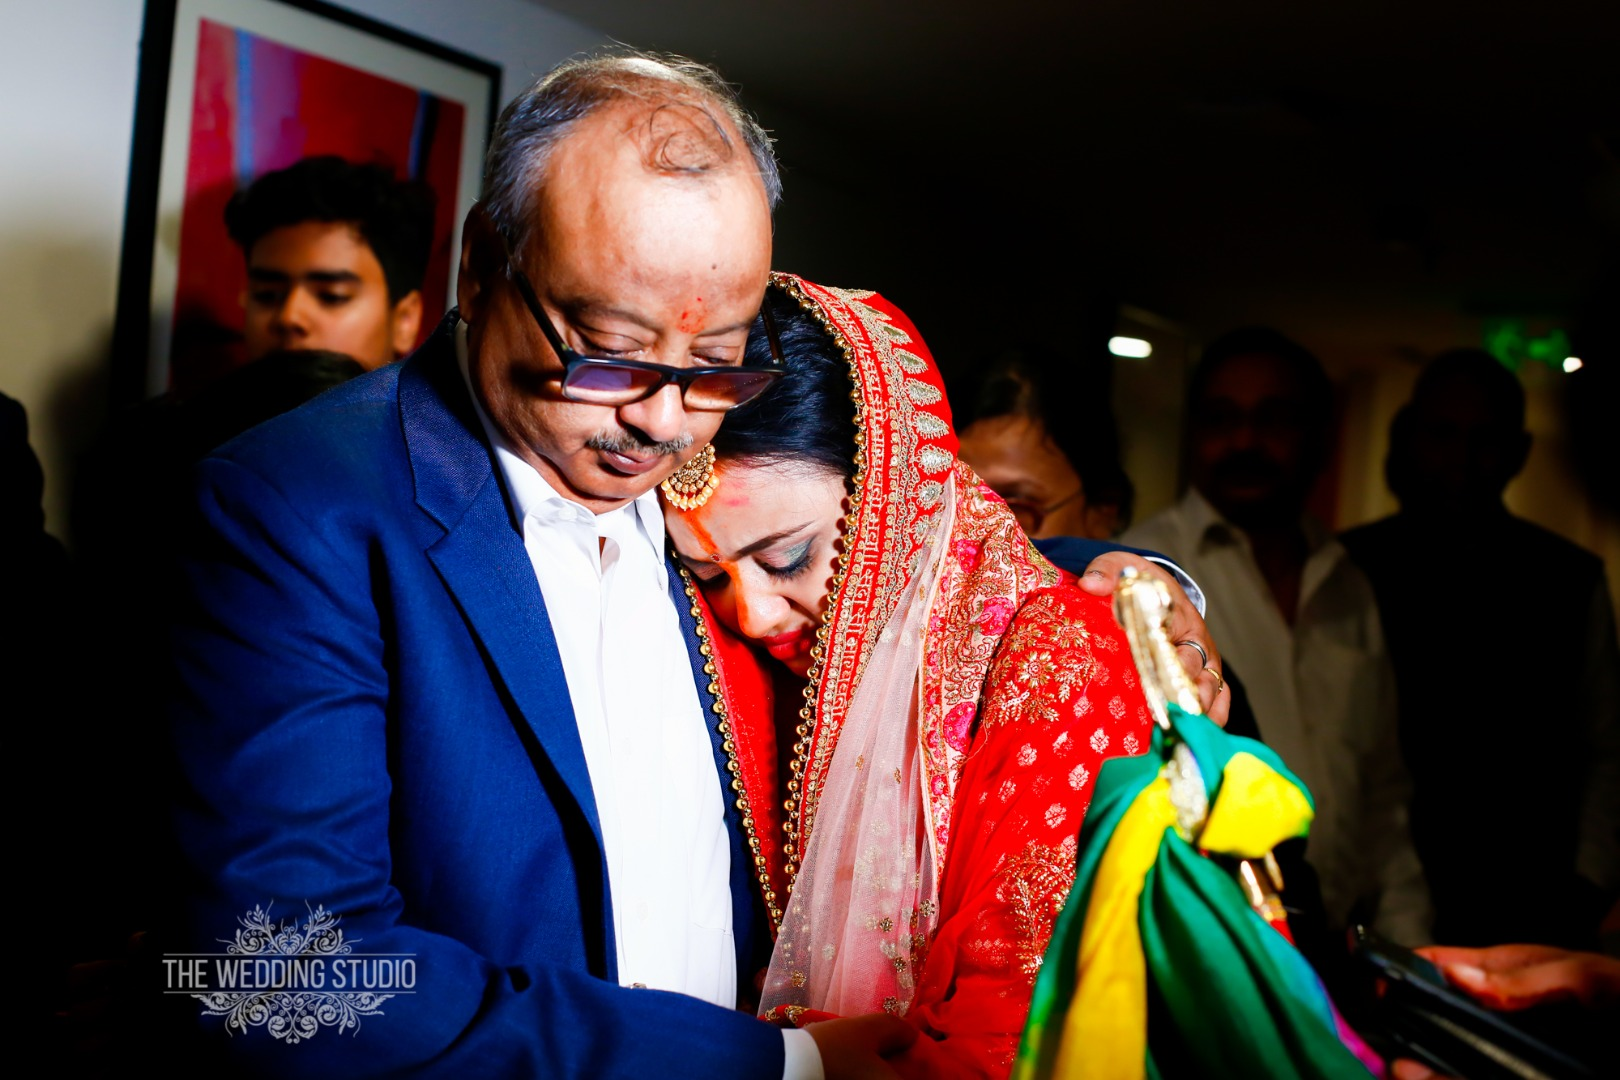 Emotional Moments in Indian Weddings